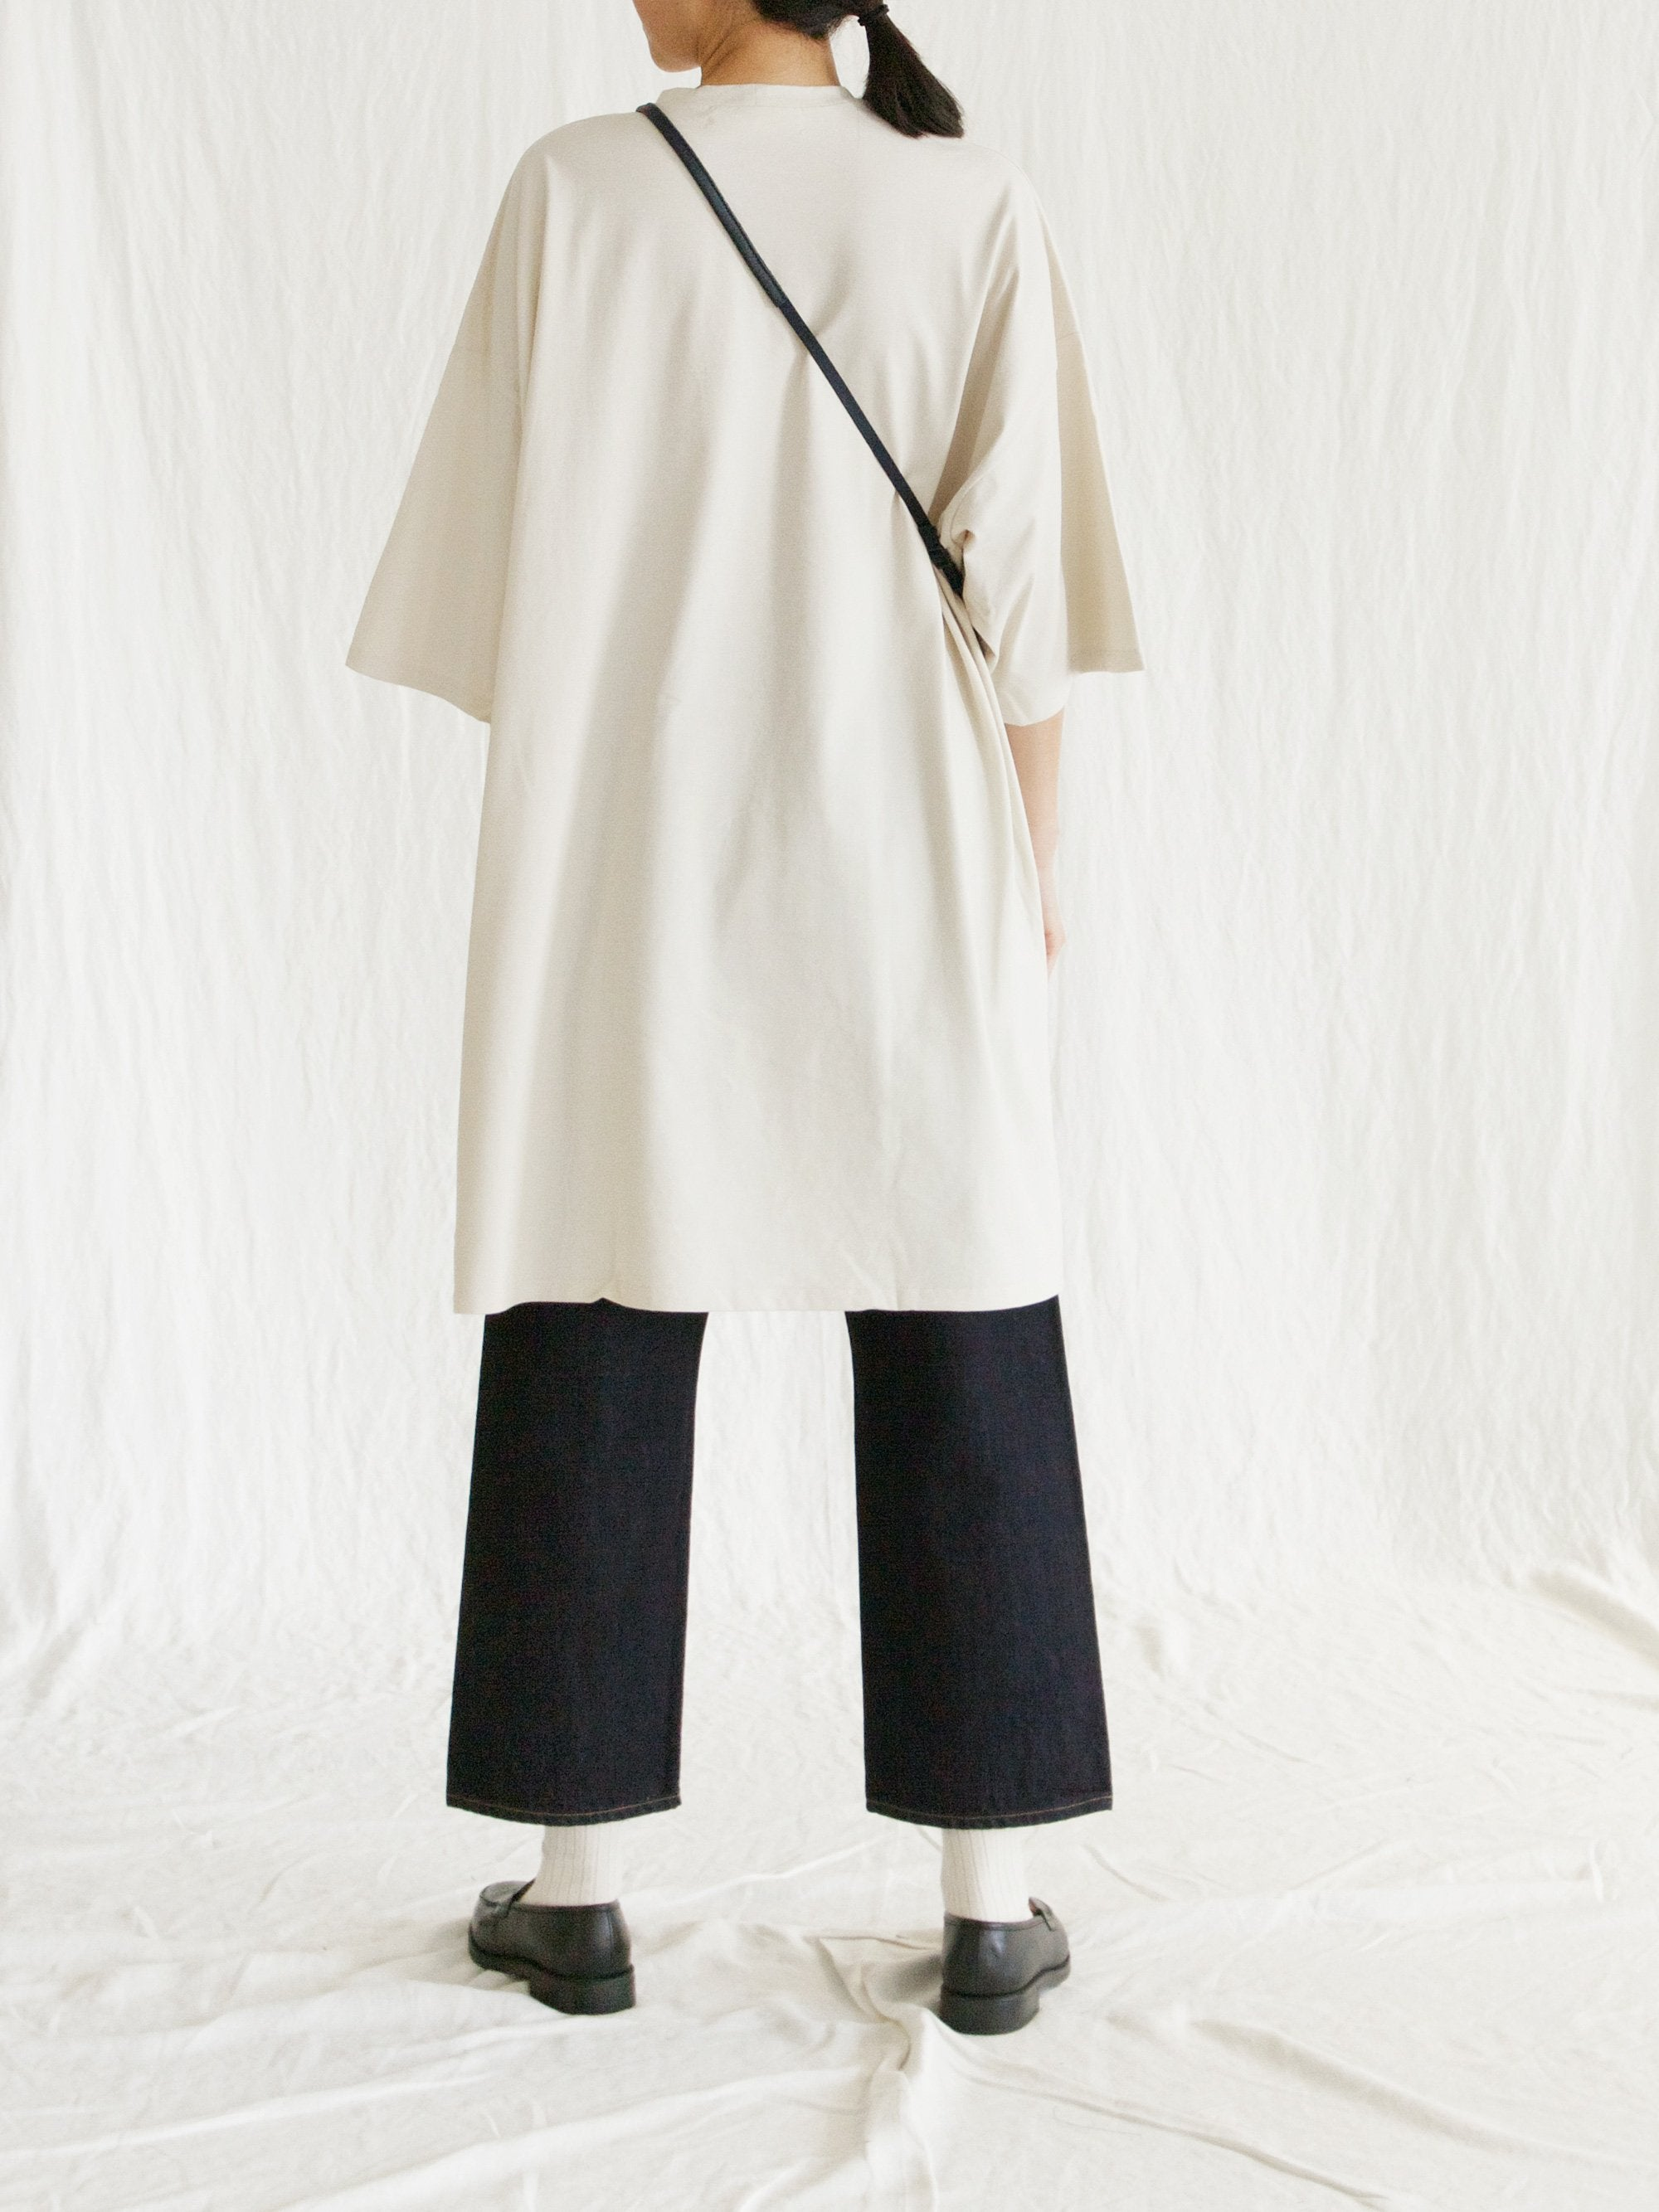 Namu Shop - Veritecoeur Oversized T-Shirt Dress - Ivory